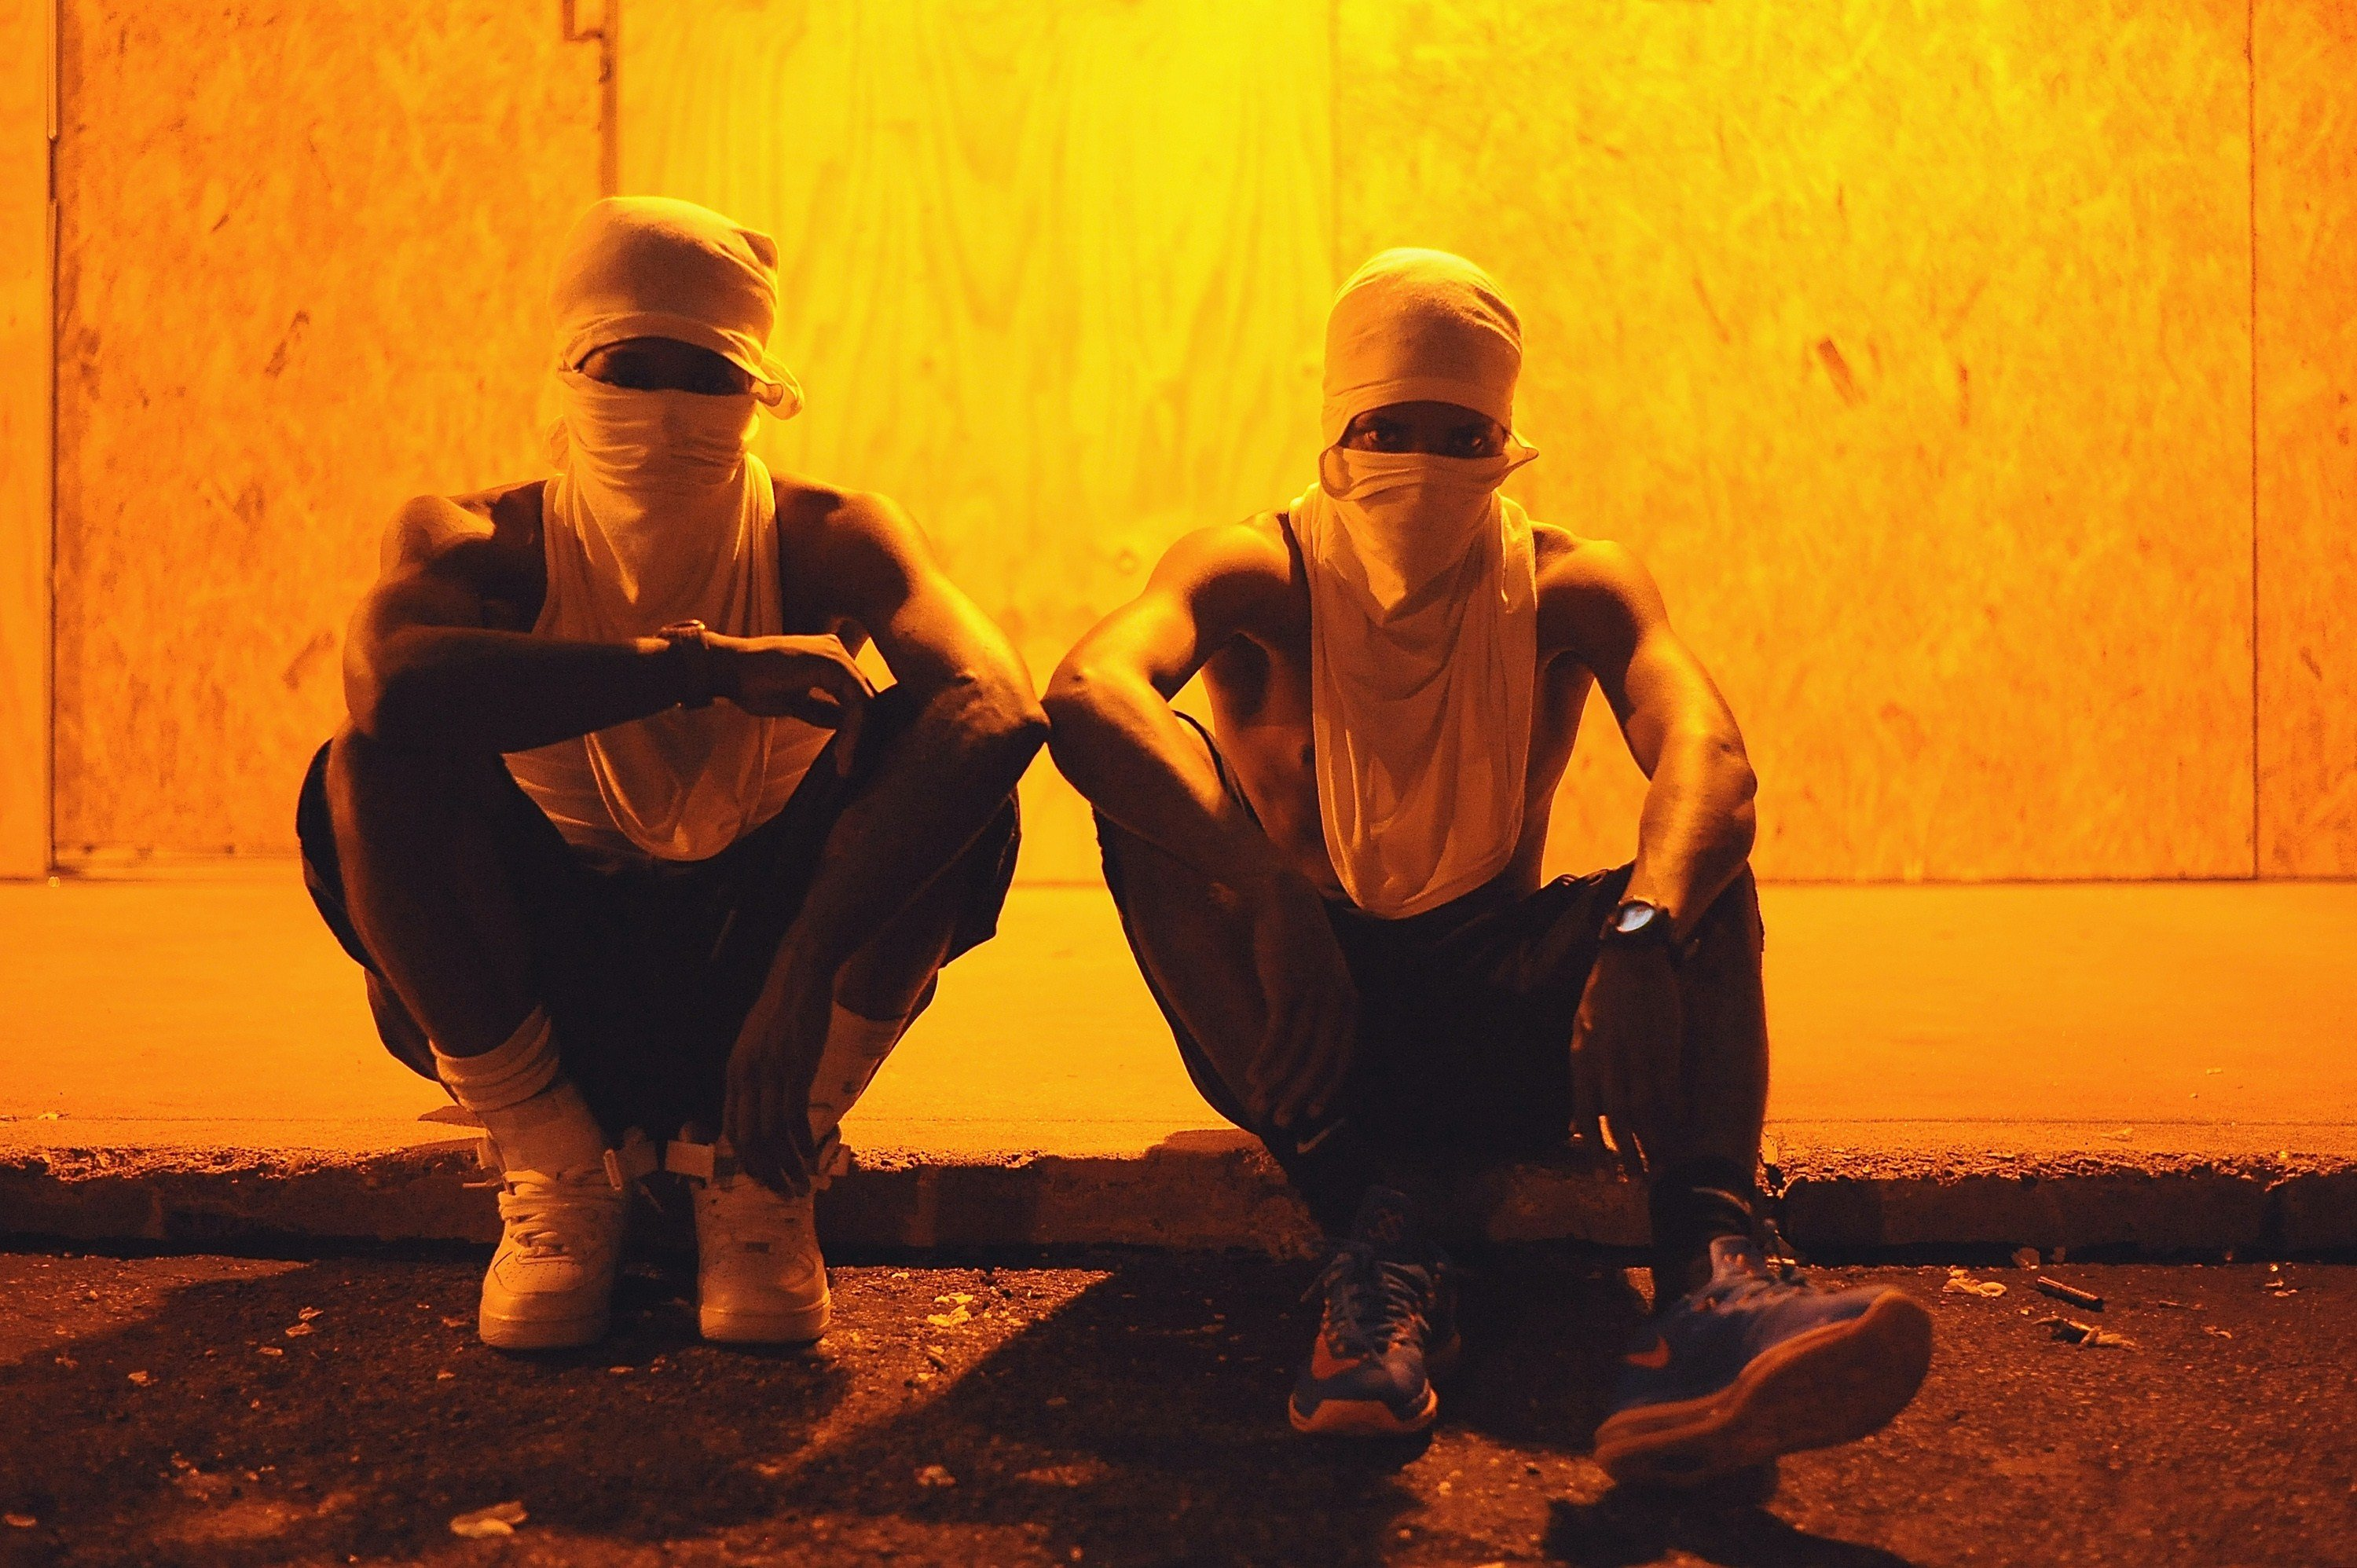 Two protesters sit with their faces covered during a peaceful protest in Ferguson, Mo. early on Aug. 20, 2014.